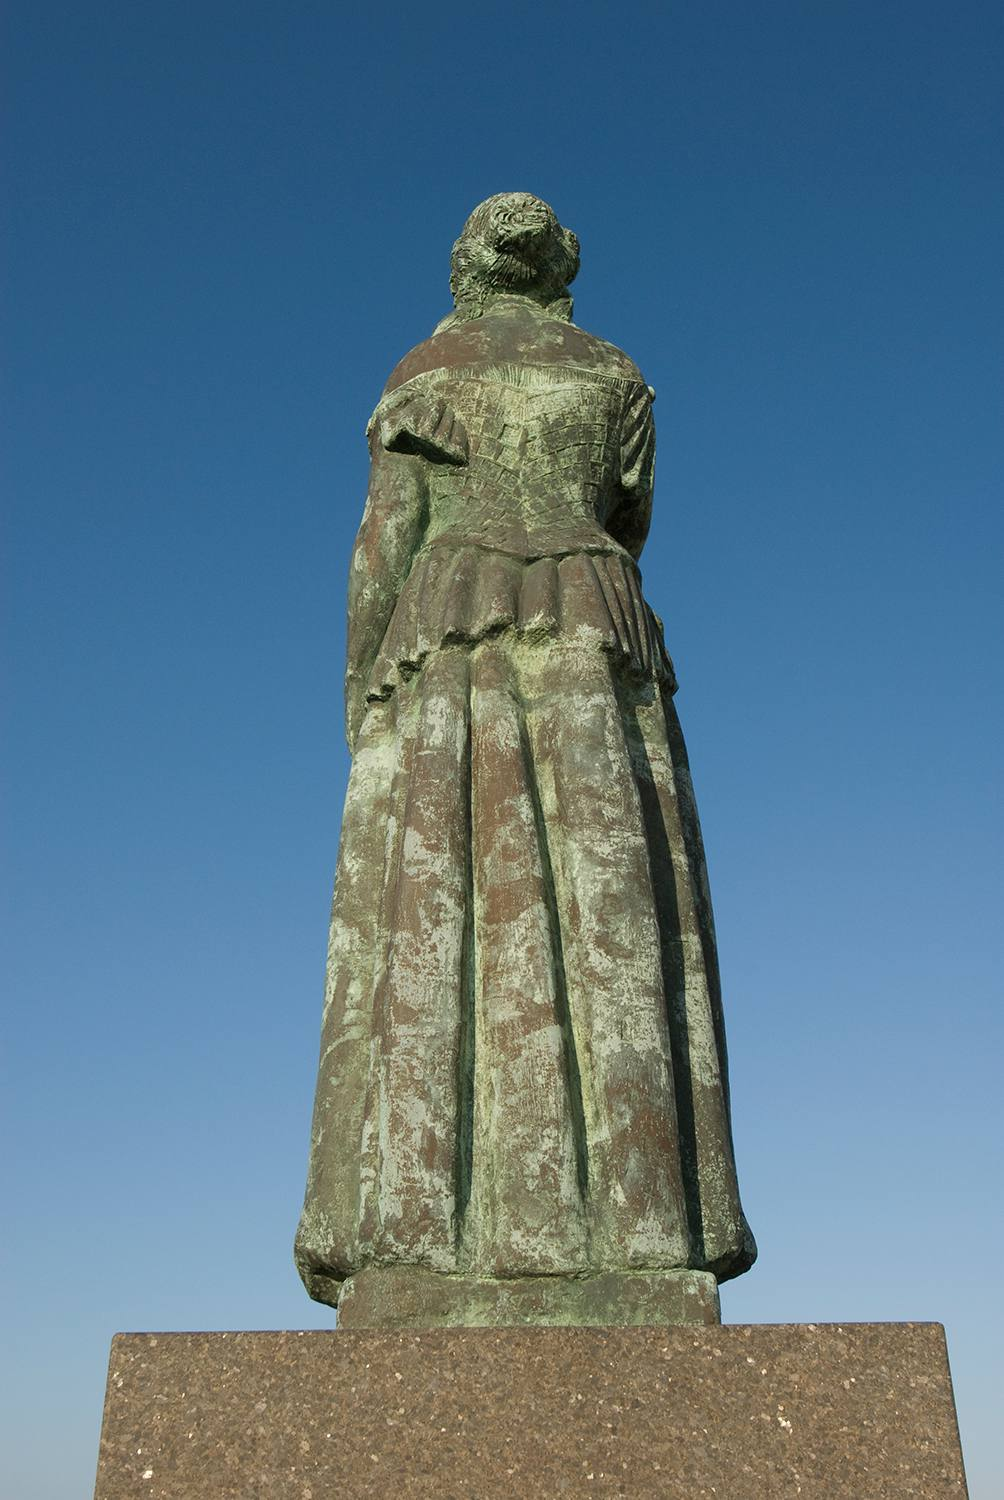 Back view of Norwegian Lady Statue, weathered green with colonial dress and hair pulled back into a bun, in Virginia Beach, pointed in the direction of Moss, Norway.